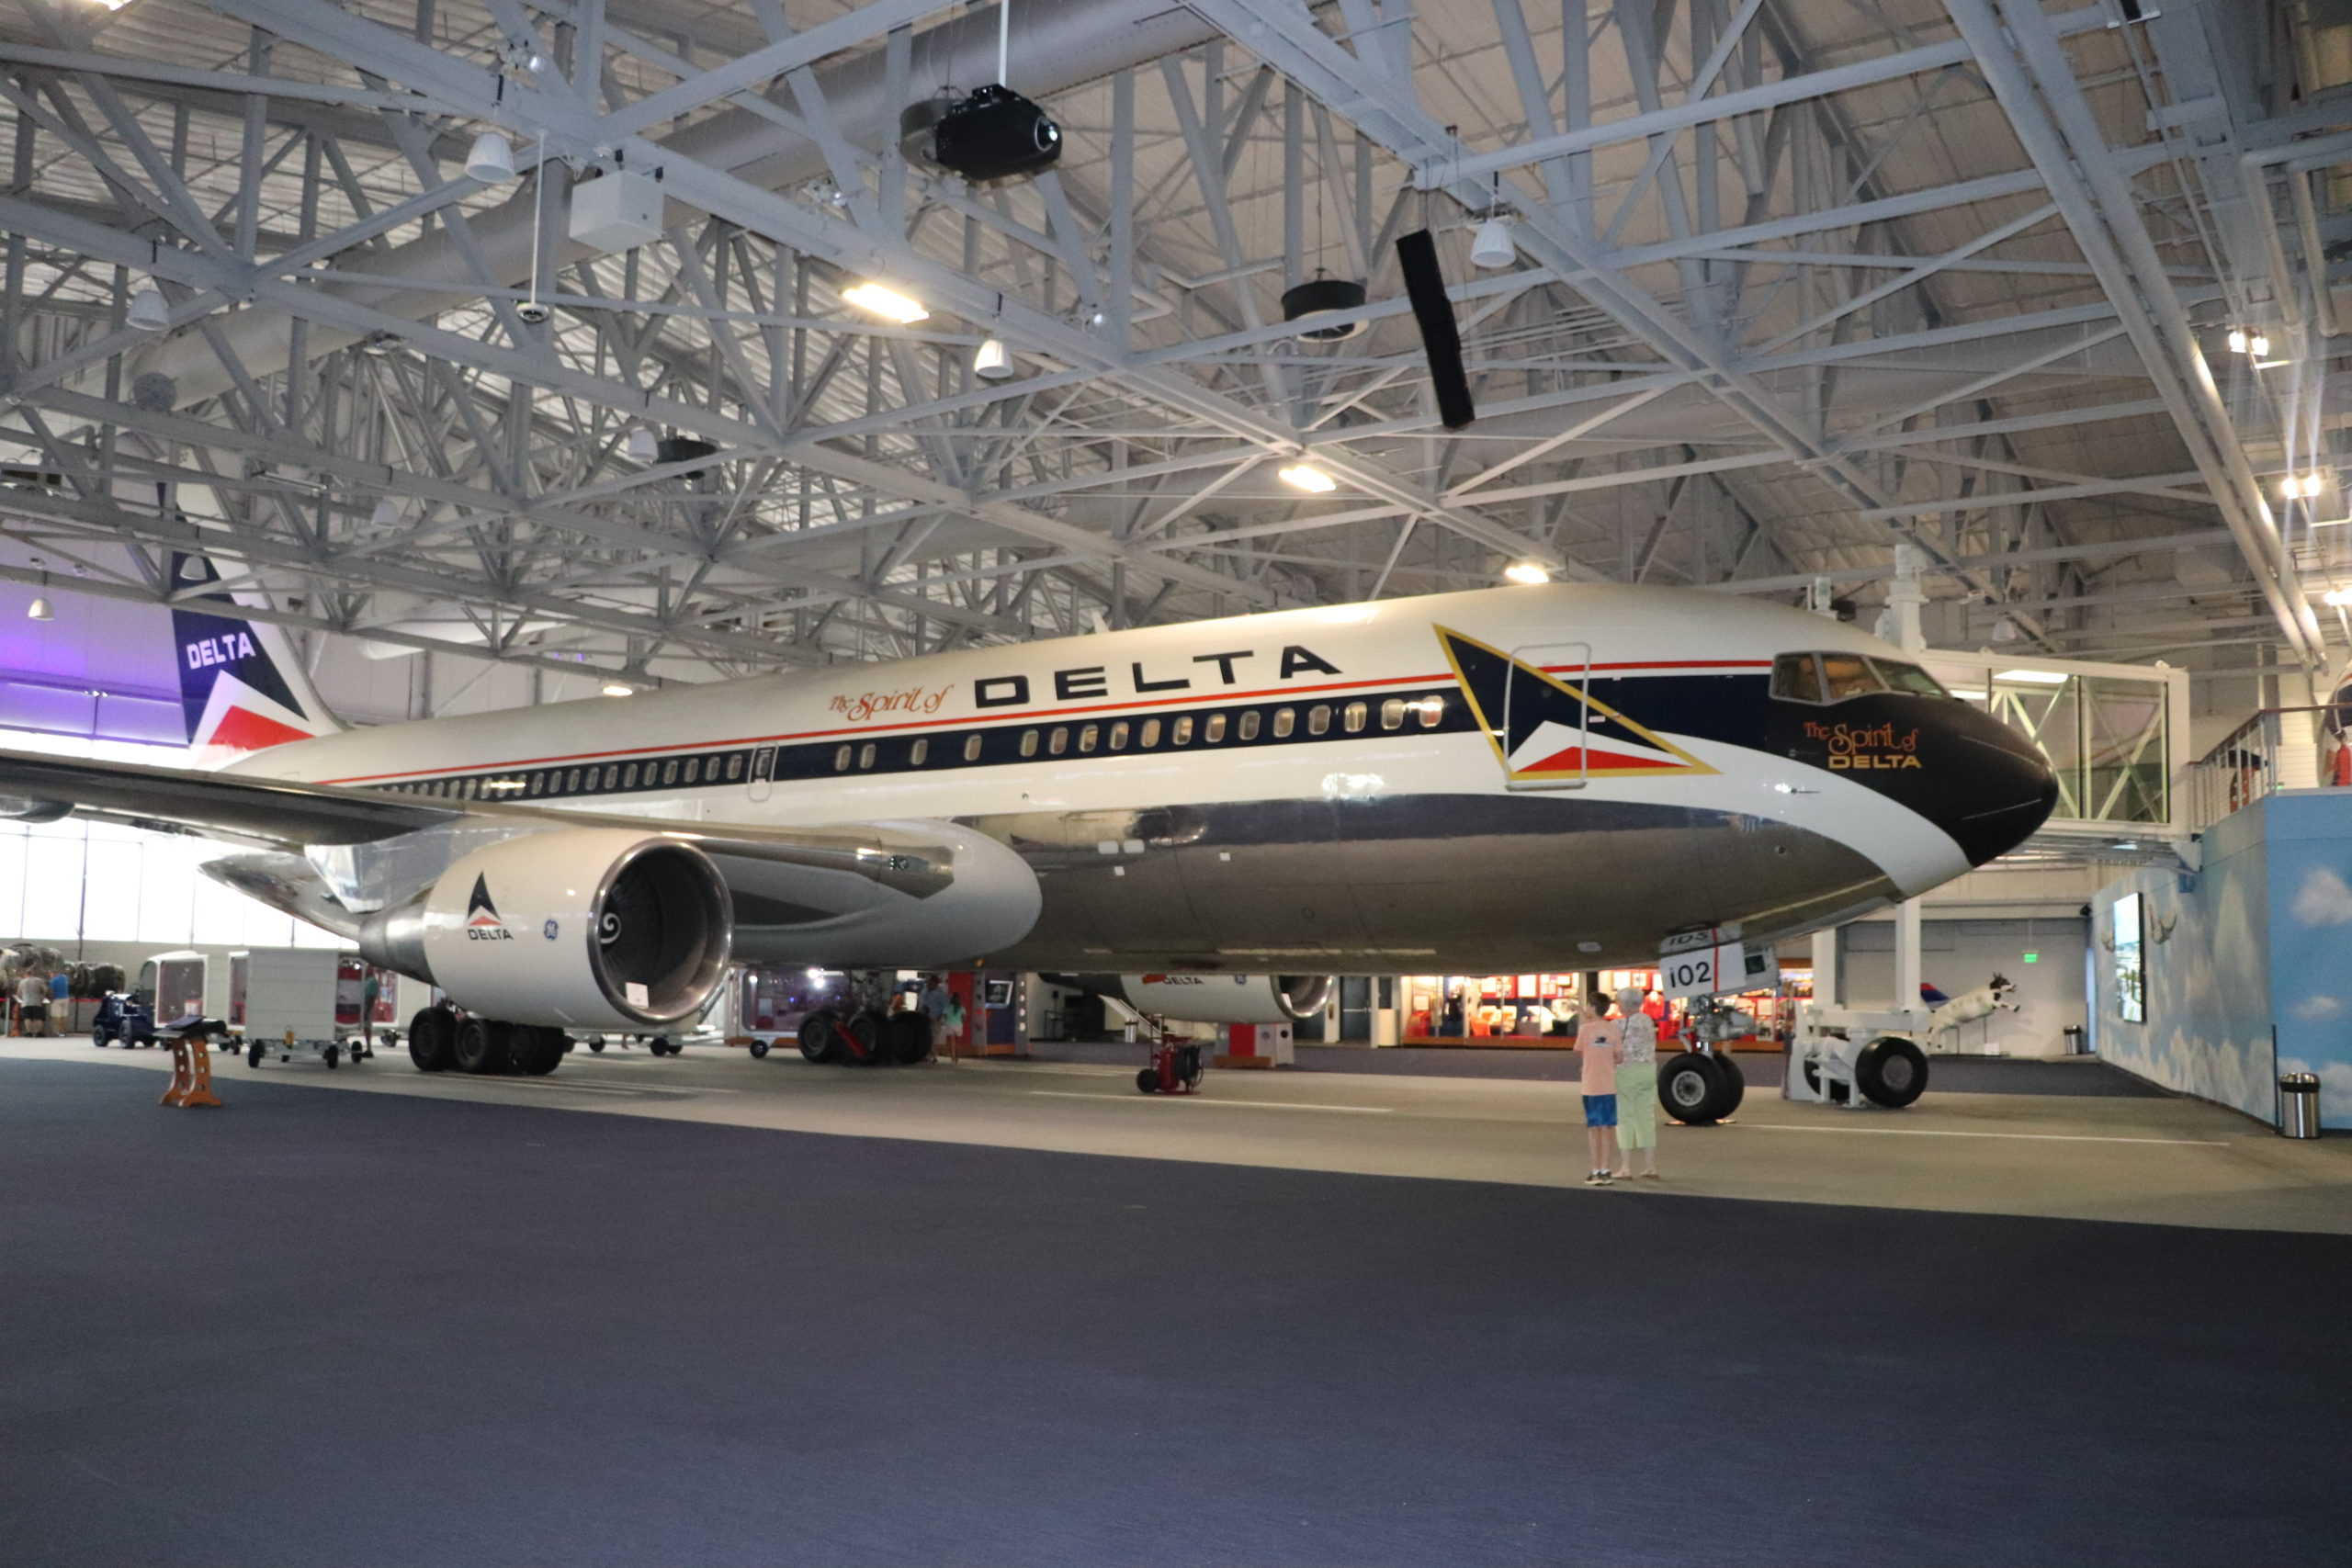 The Spirit of Delta at the Delta Flight Museum, just one of many Atlanta museums.